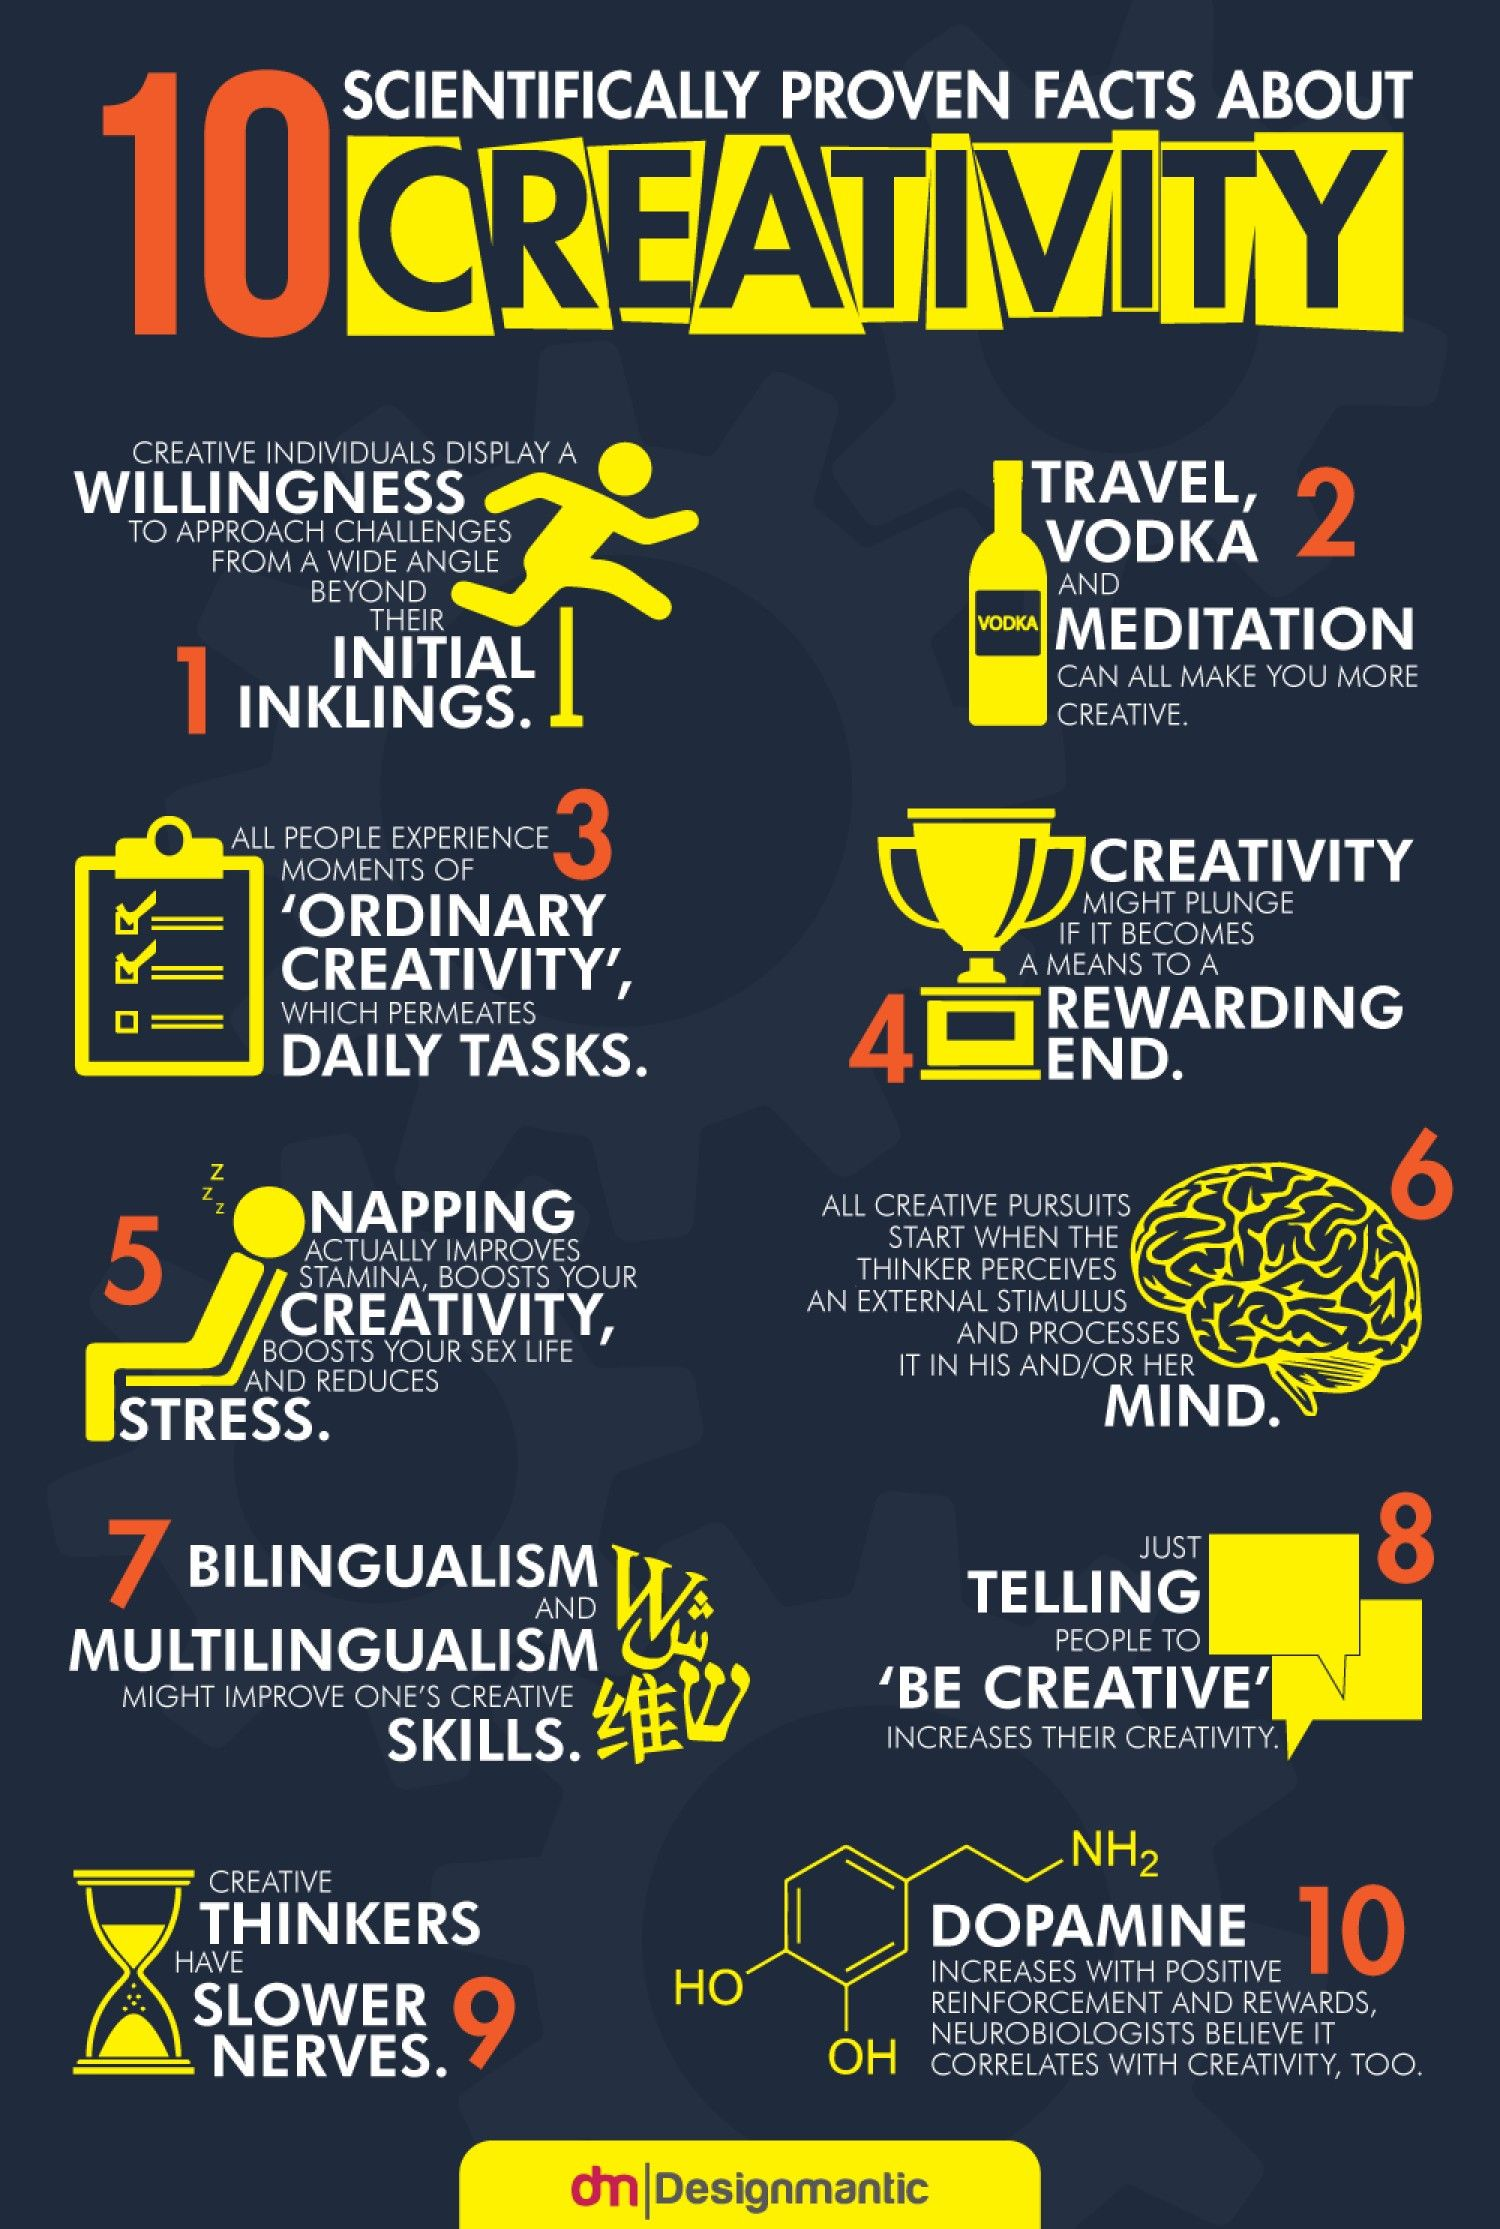 Scientifically Proven Facts About Creativity